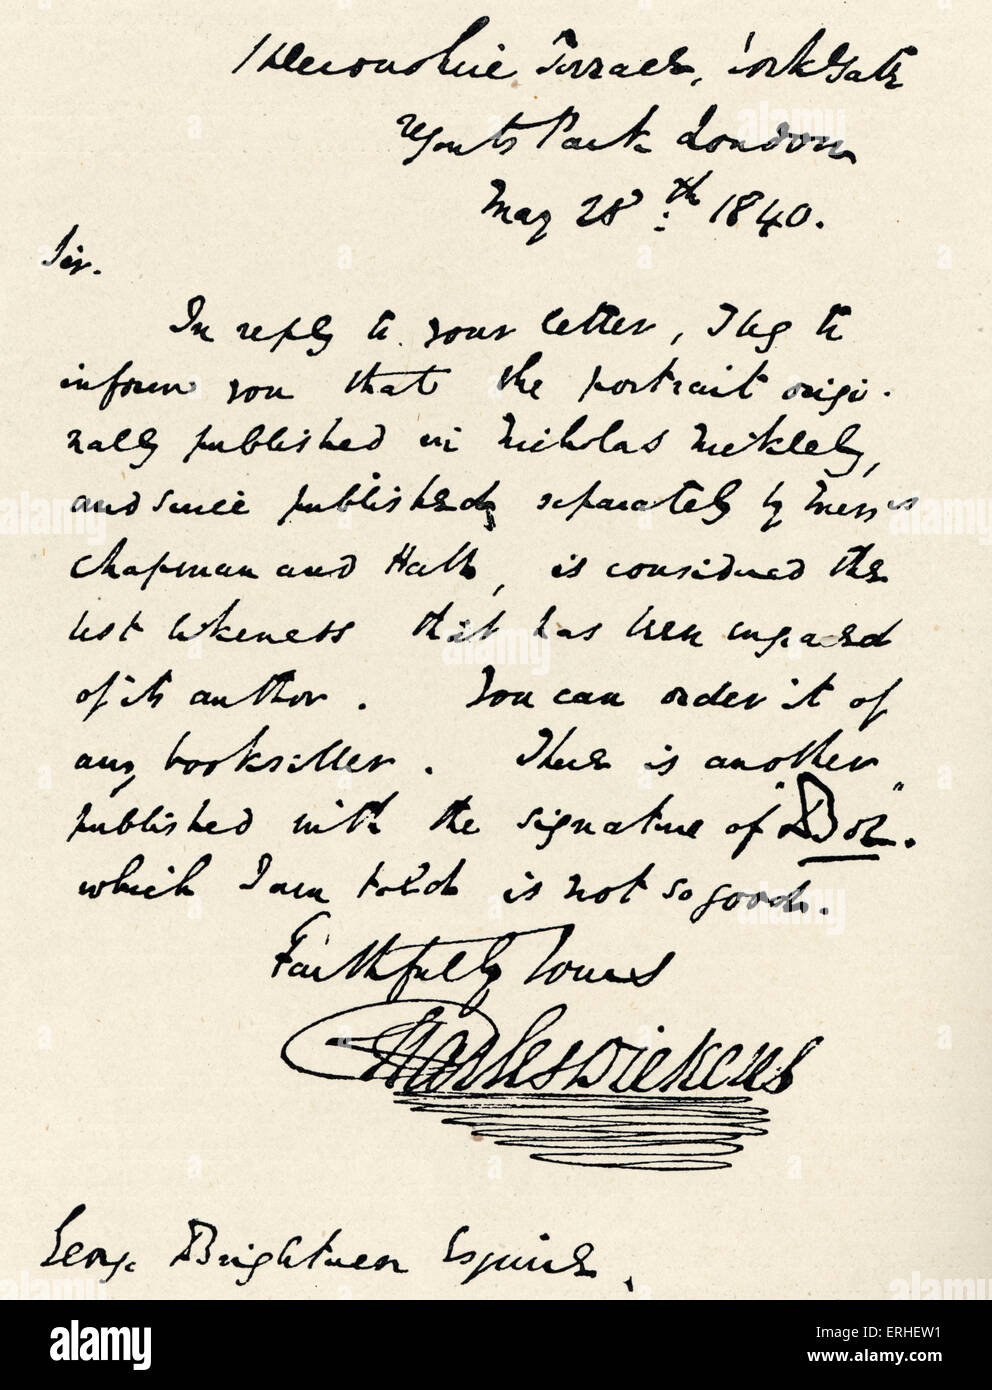 Charles Dickens - Signed handwritten letter from the English novelist to George Brightwen confirming authorship - Stock Image